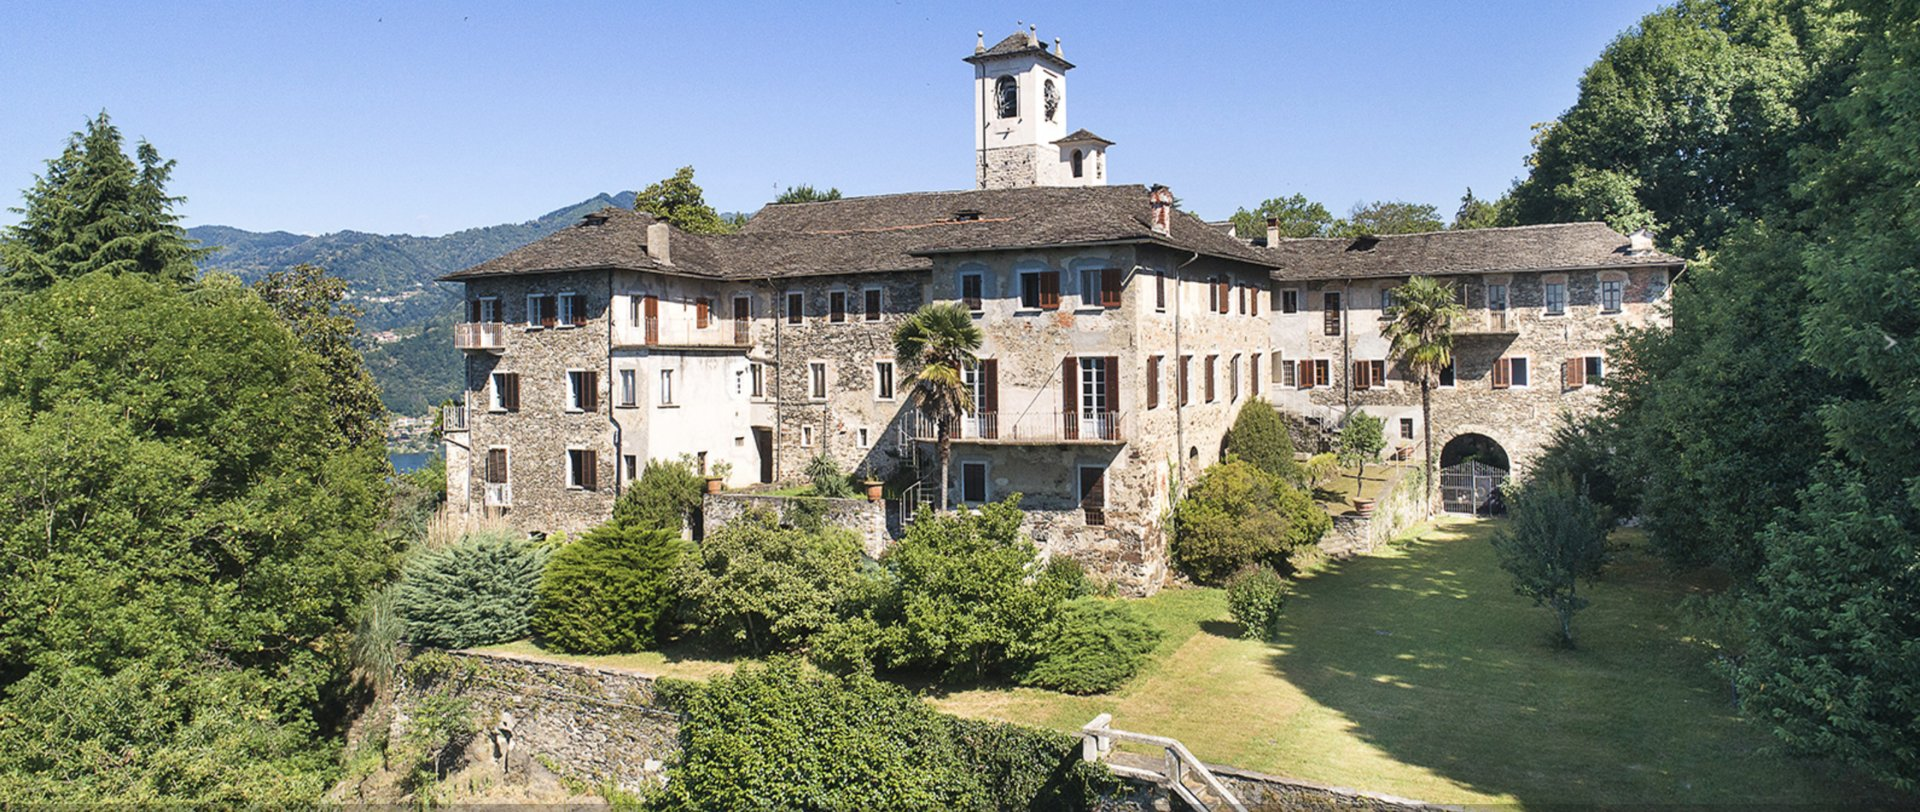 Historic property former convent for sale in Orta - outside